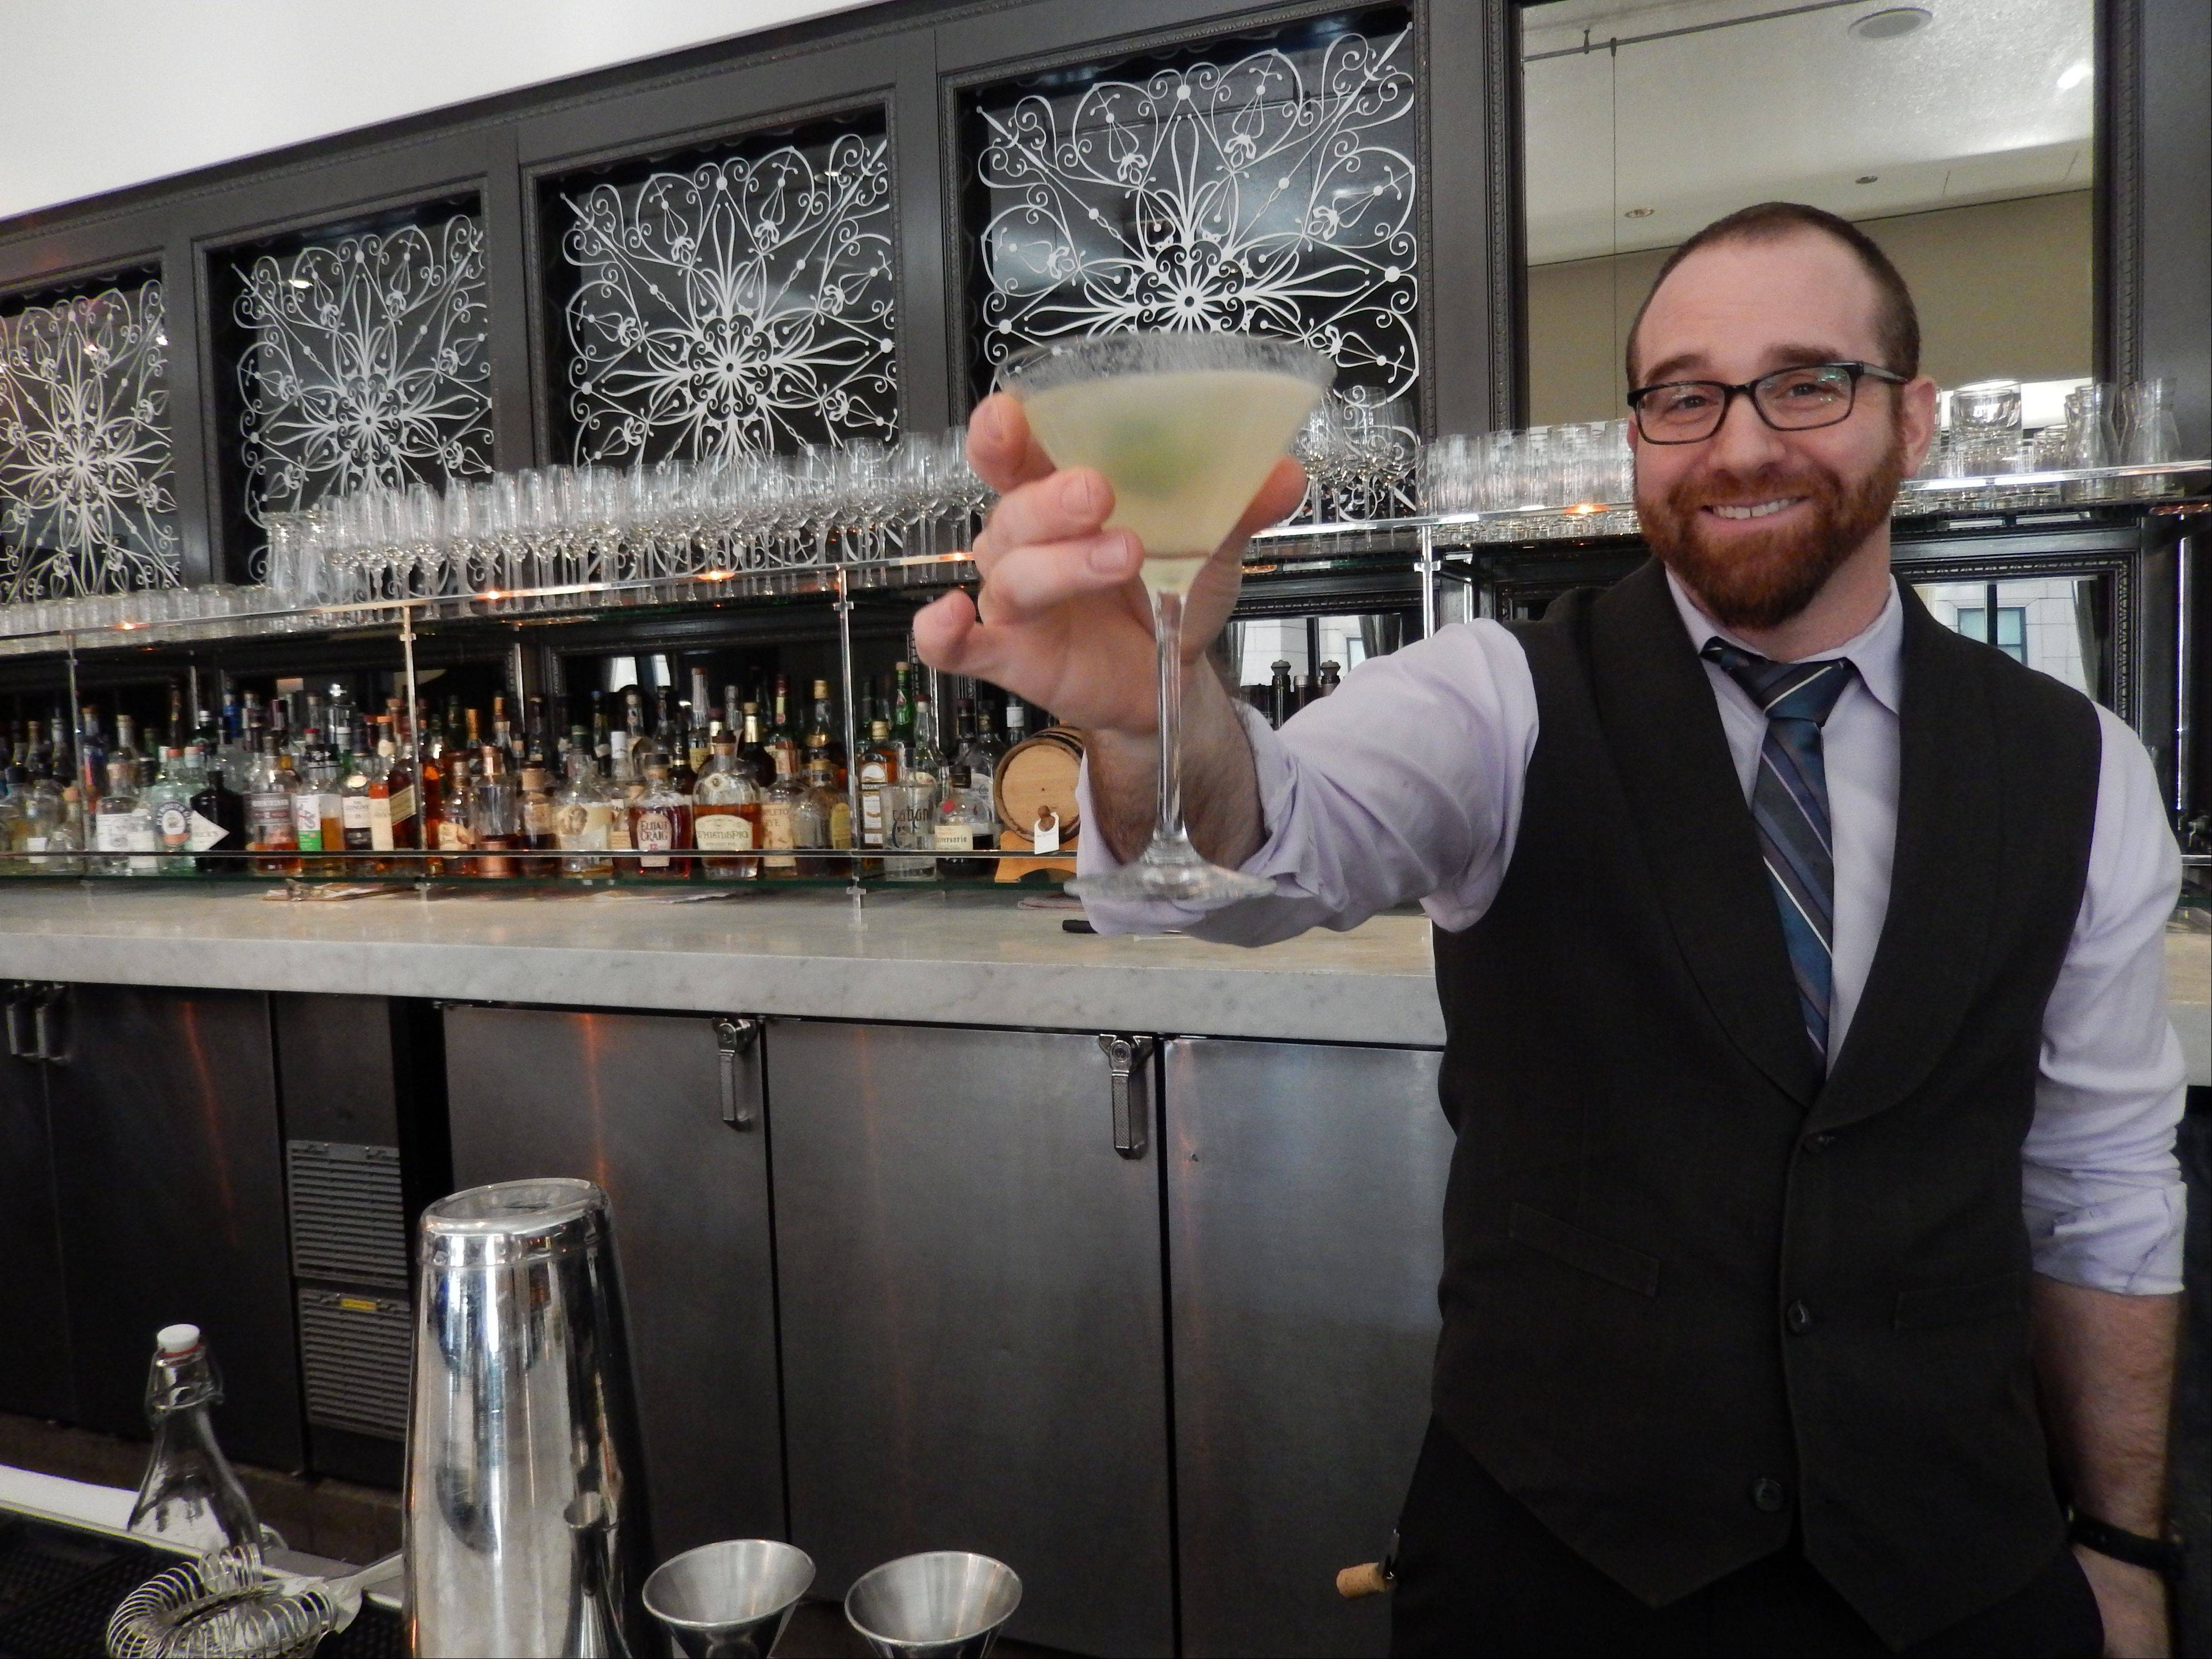 Balsan bartender Michael Kennedy serves up a Moscow Thoroughbred, his twist on a Moscow Mule, at the Chicago restaurant.